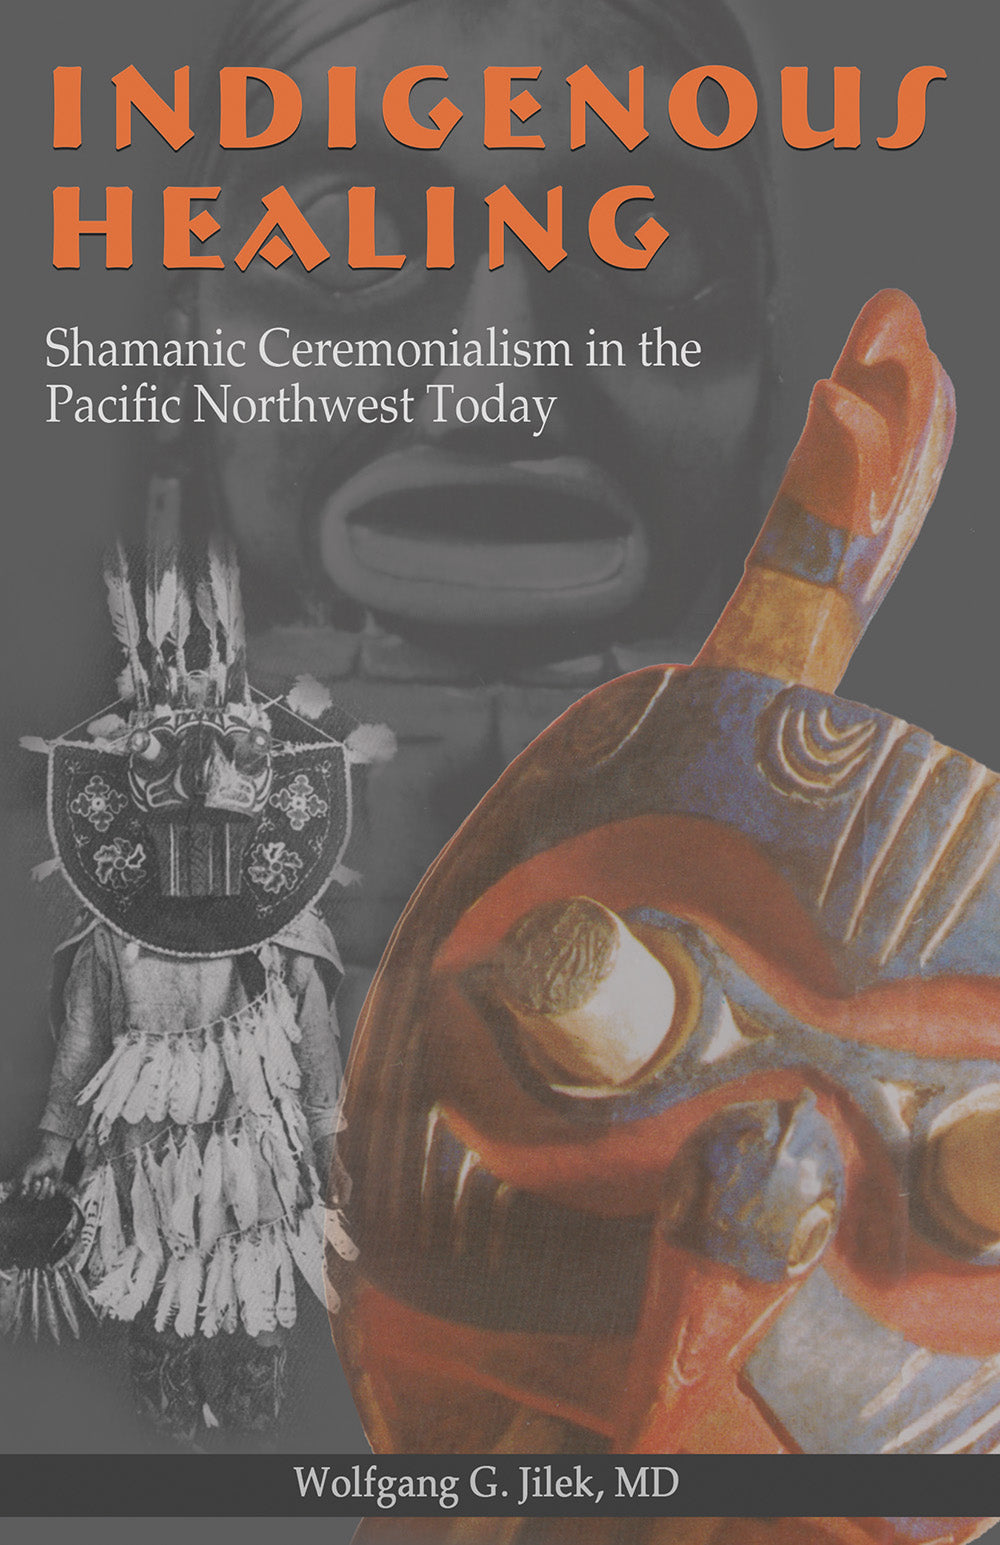 Indigenous Healing: shamanic ceremonialism in the Pacific Northwest today